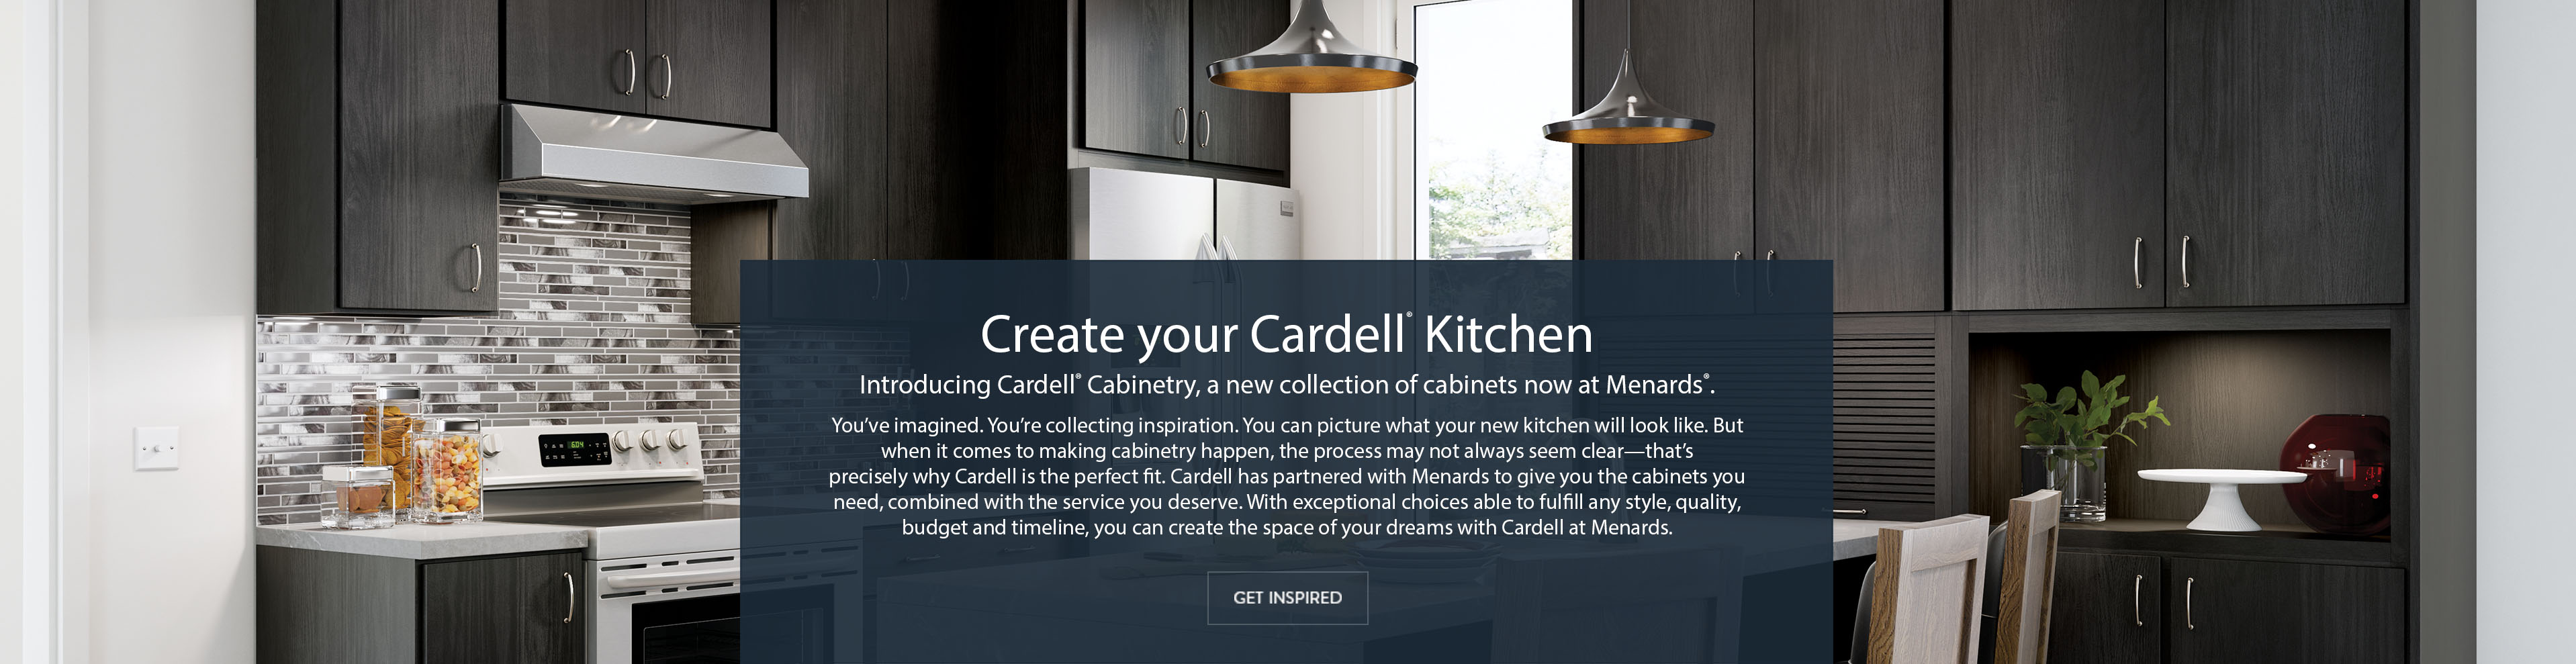 Astonishing Cardell Cabinetry Kitchen And Bathroom Cabinetry Home Remodeling Inspirations Genioncuboardxyz